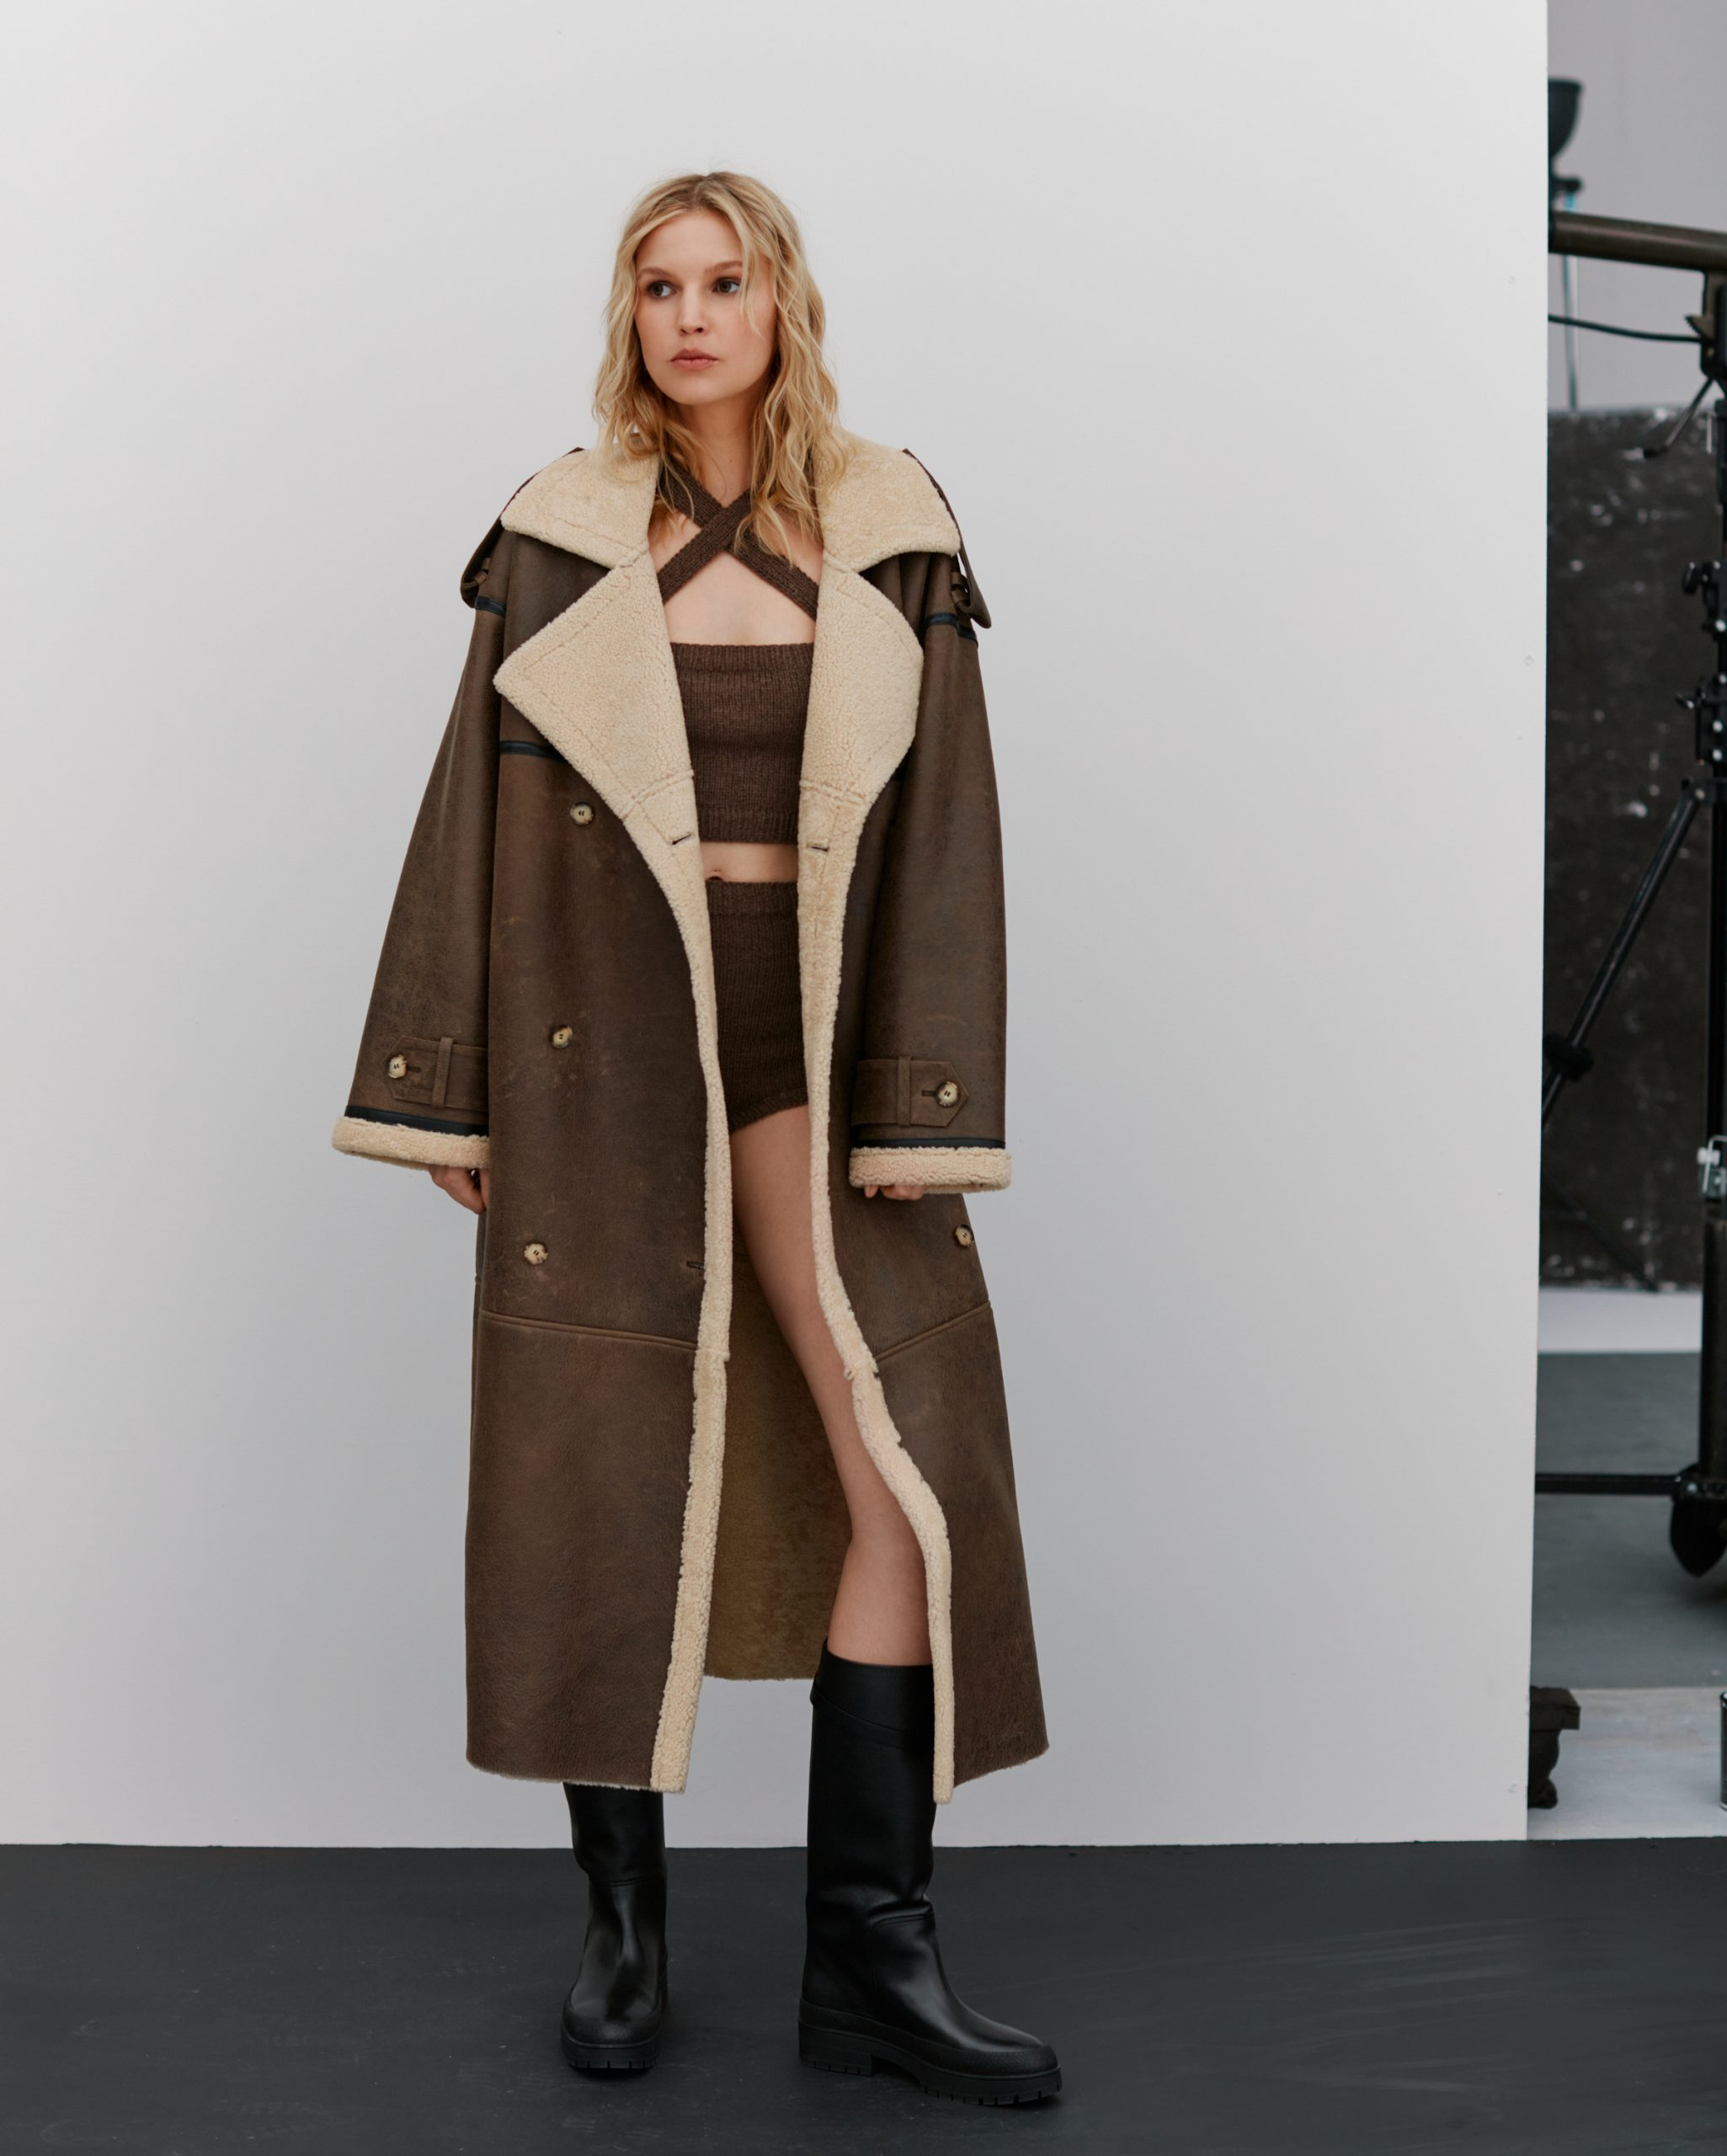 Long shearling coat in brown by JORDAN, available on themannei.com for $4.25 Elsa Hosk Outerwear Exact Product